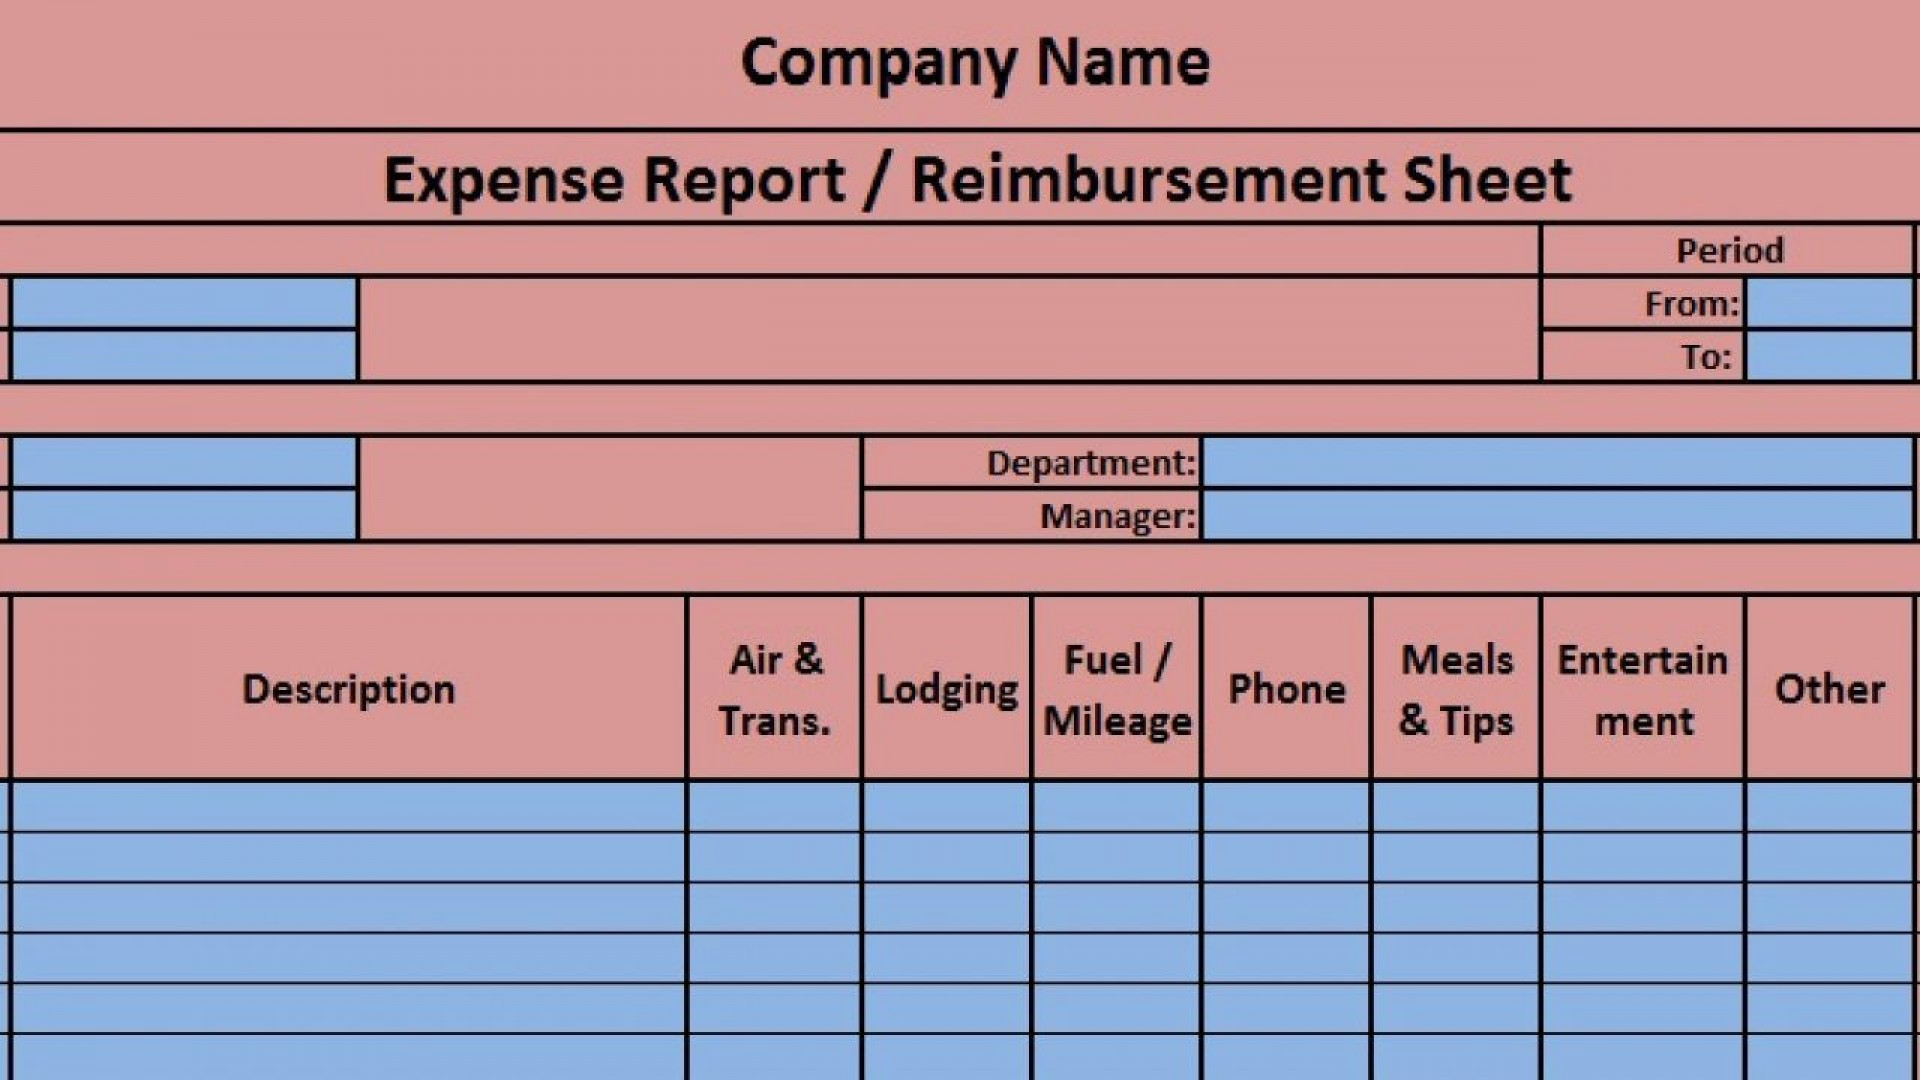 004 Rare Expense Report Template Excel Photo  Free Format 20101920